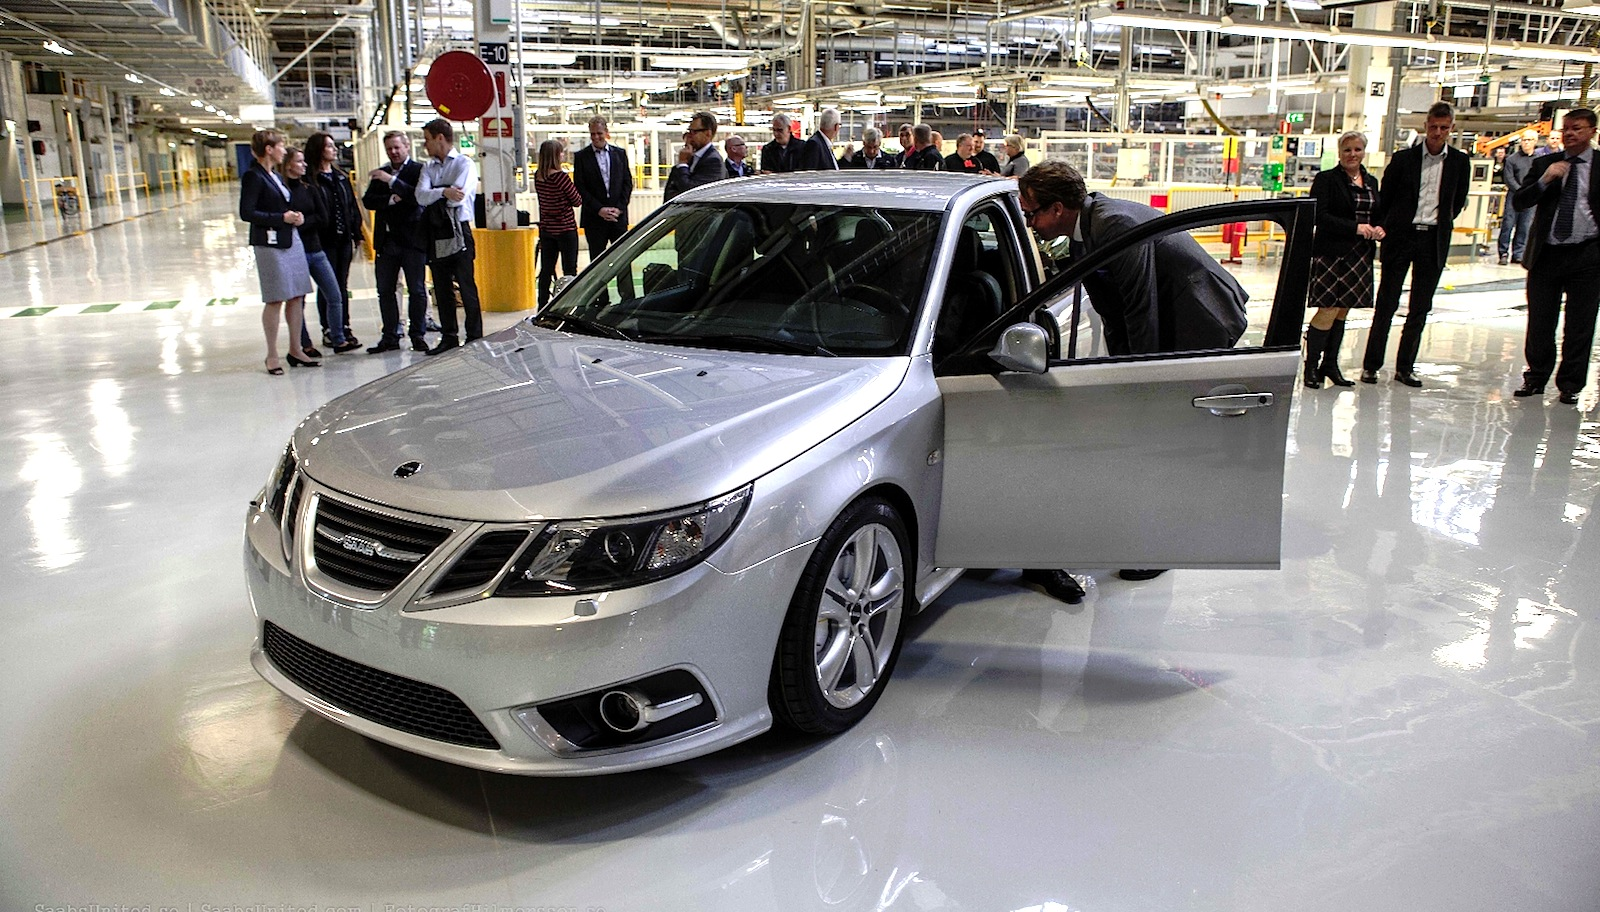 Best Cars Under 100000 >> Saab production resumes in Trollhattan under NEVS control - Photos (1 of 6)